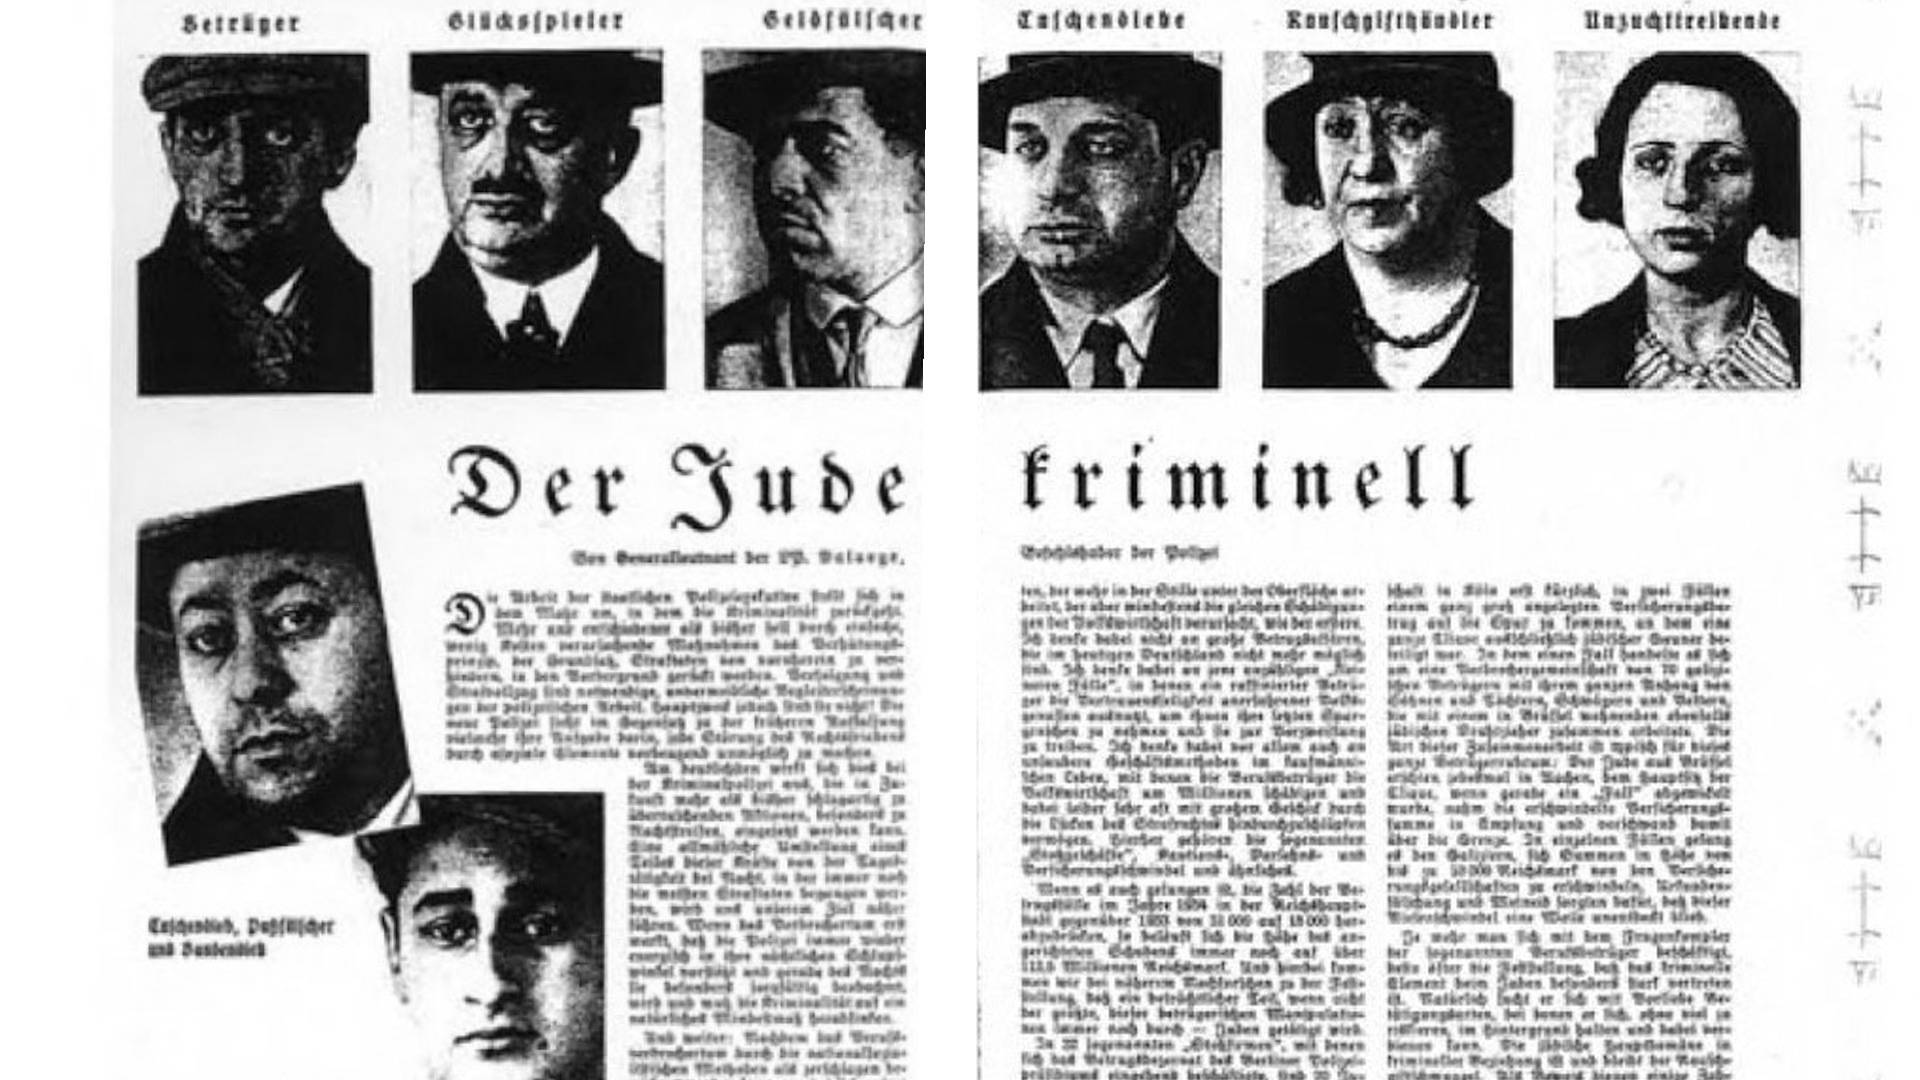 a victims account of the atrocities committed against the jews by the nazis Reports of adolf hitler and his totalitarian aspirations  on wartime atrocities in  europe, mention of jewish victims was minimal  such unprecedented accounts  of mass, state-sponsored, anti-jewish violence.